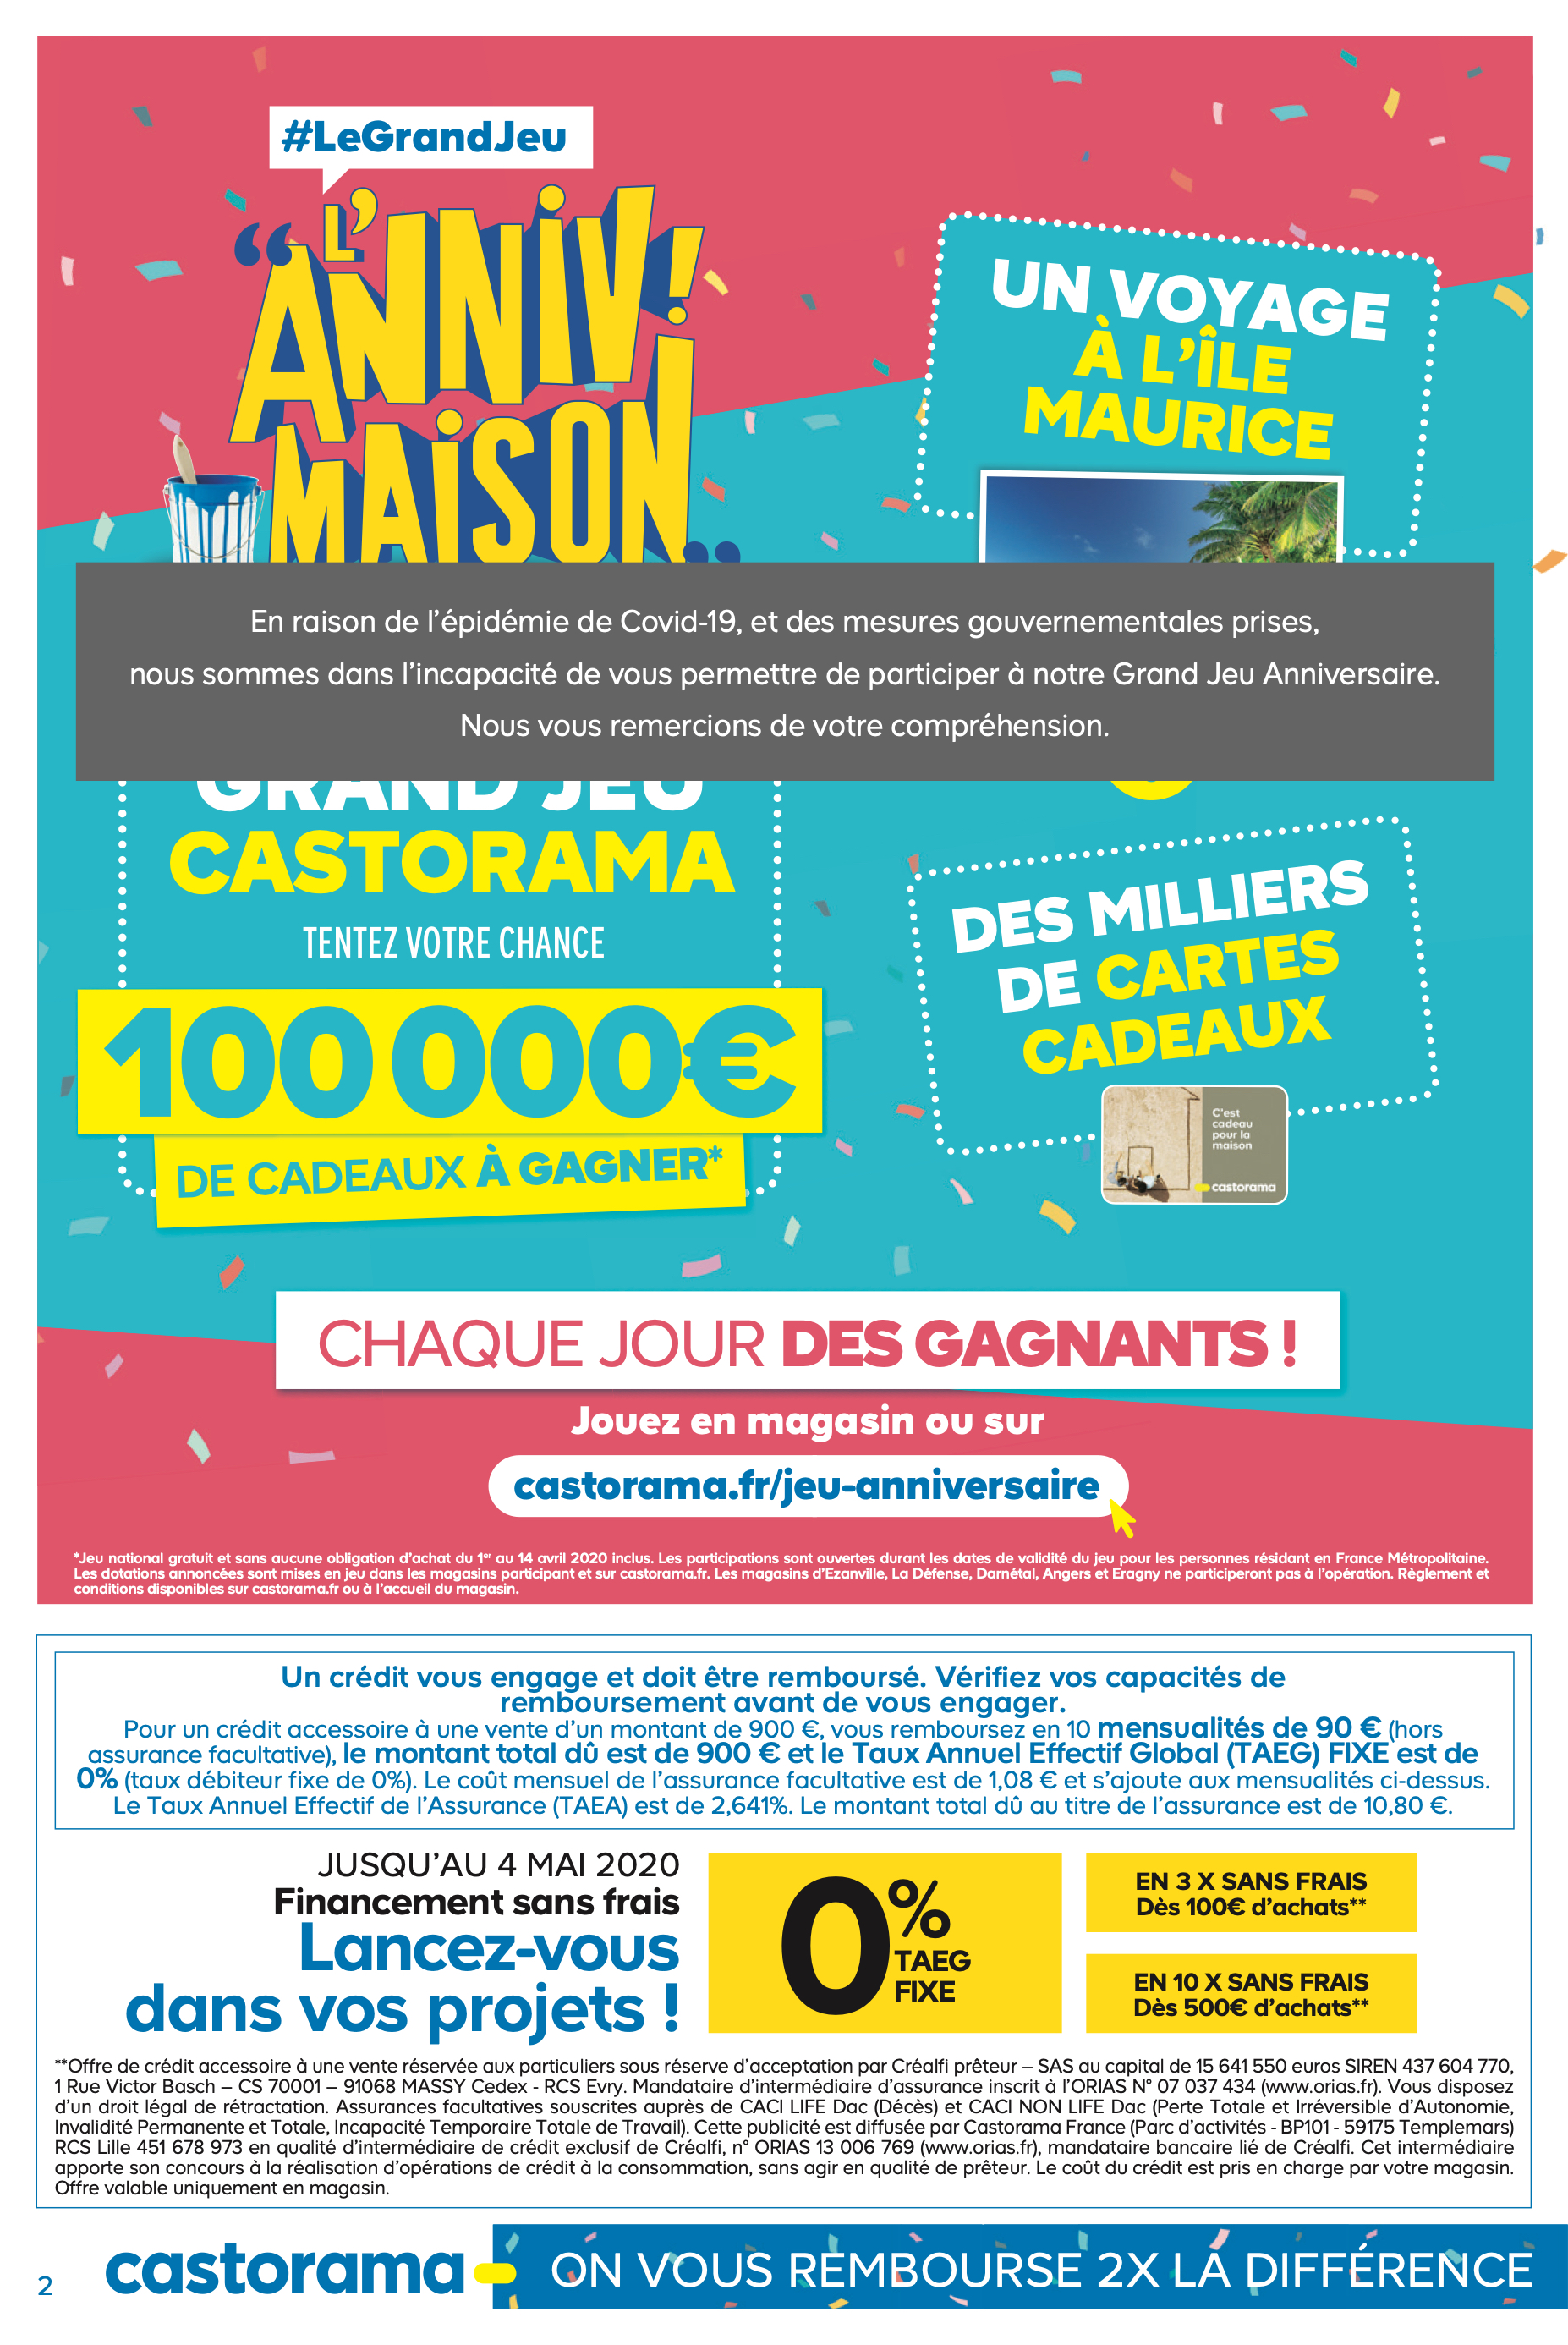 Castorama Chaise De Plage anniverssaire 1 - 2020 pages 1 - 32 - text version | anyflip